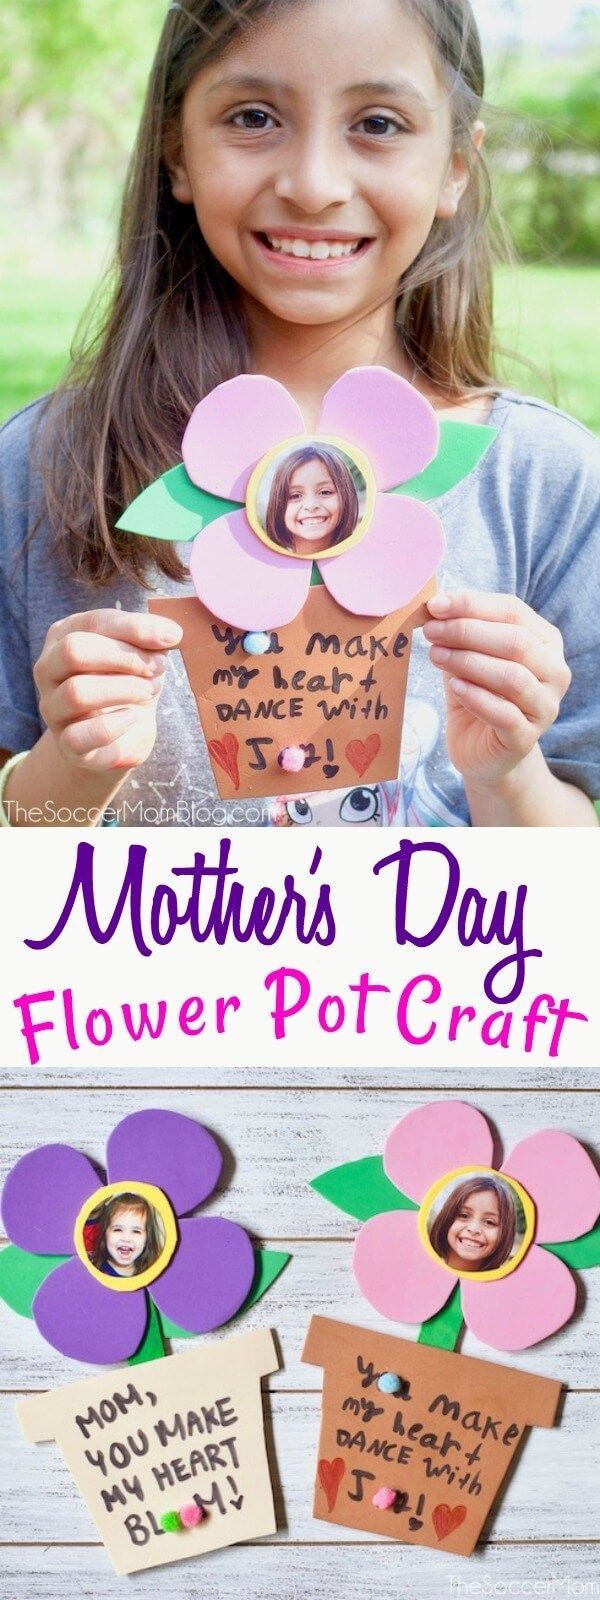 Dancing  Mother's Day Flower Craft is part of Kids Crafts Ideas For Mom - A sweet kidmade photo flower craft just for mom on her special day!  Dancing  Mother's Day Flower Craft with Kid's Photo If you want to know the way straight to my heart, it is through